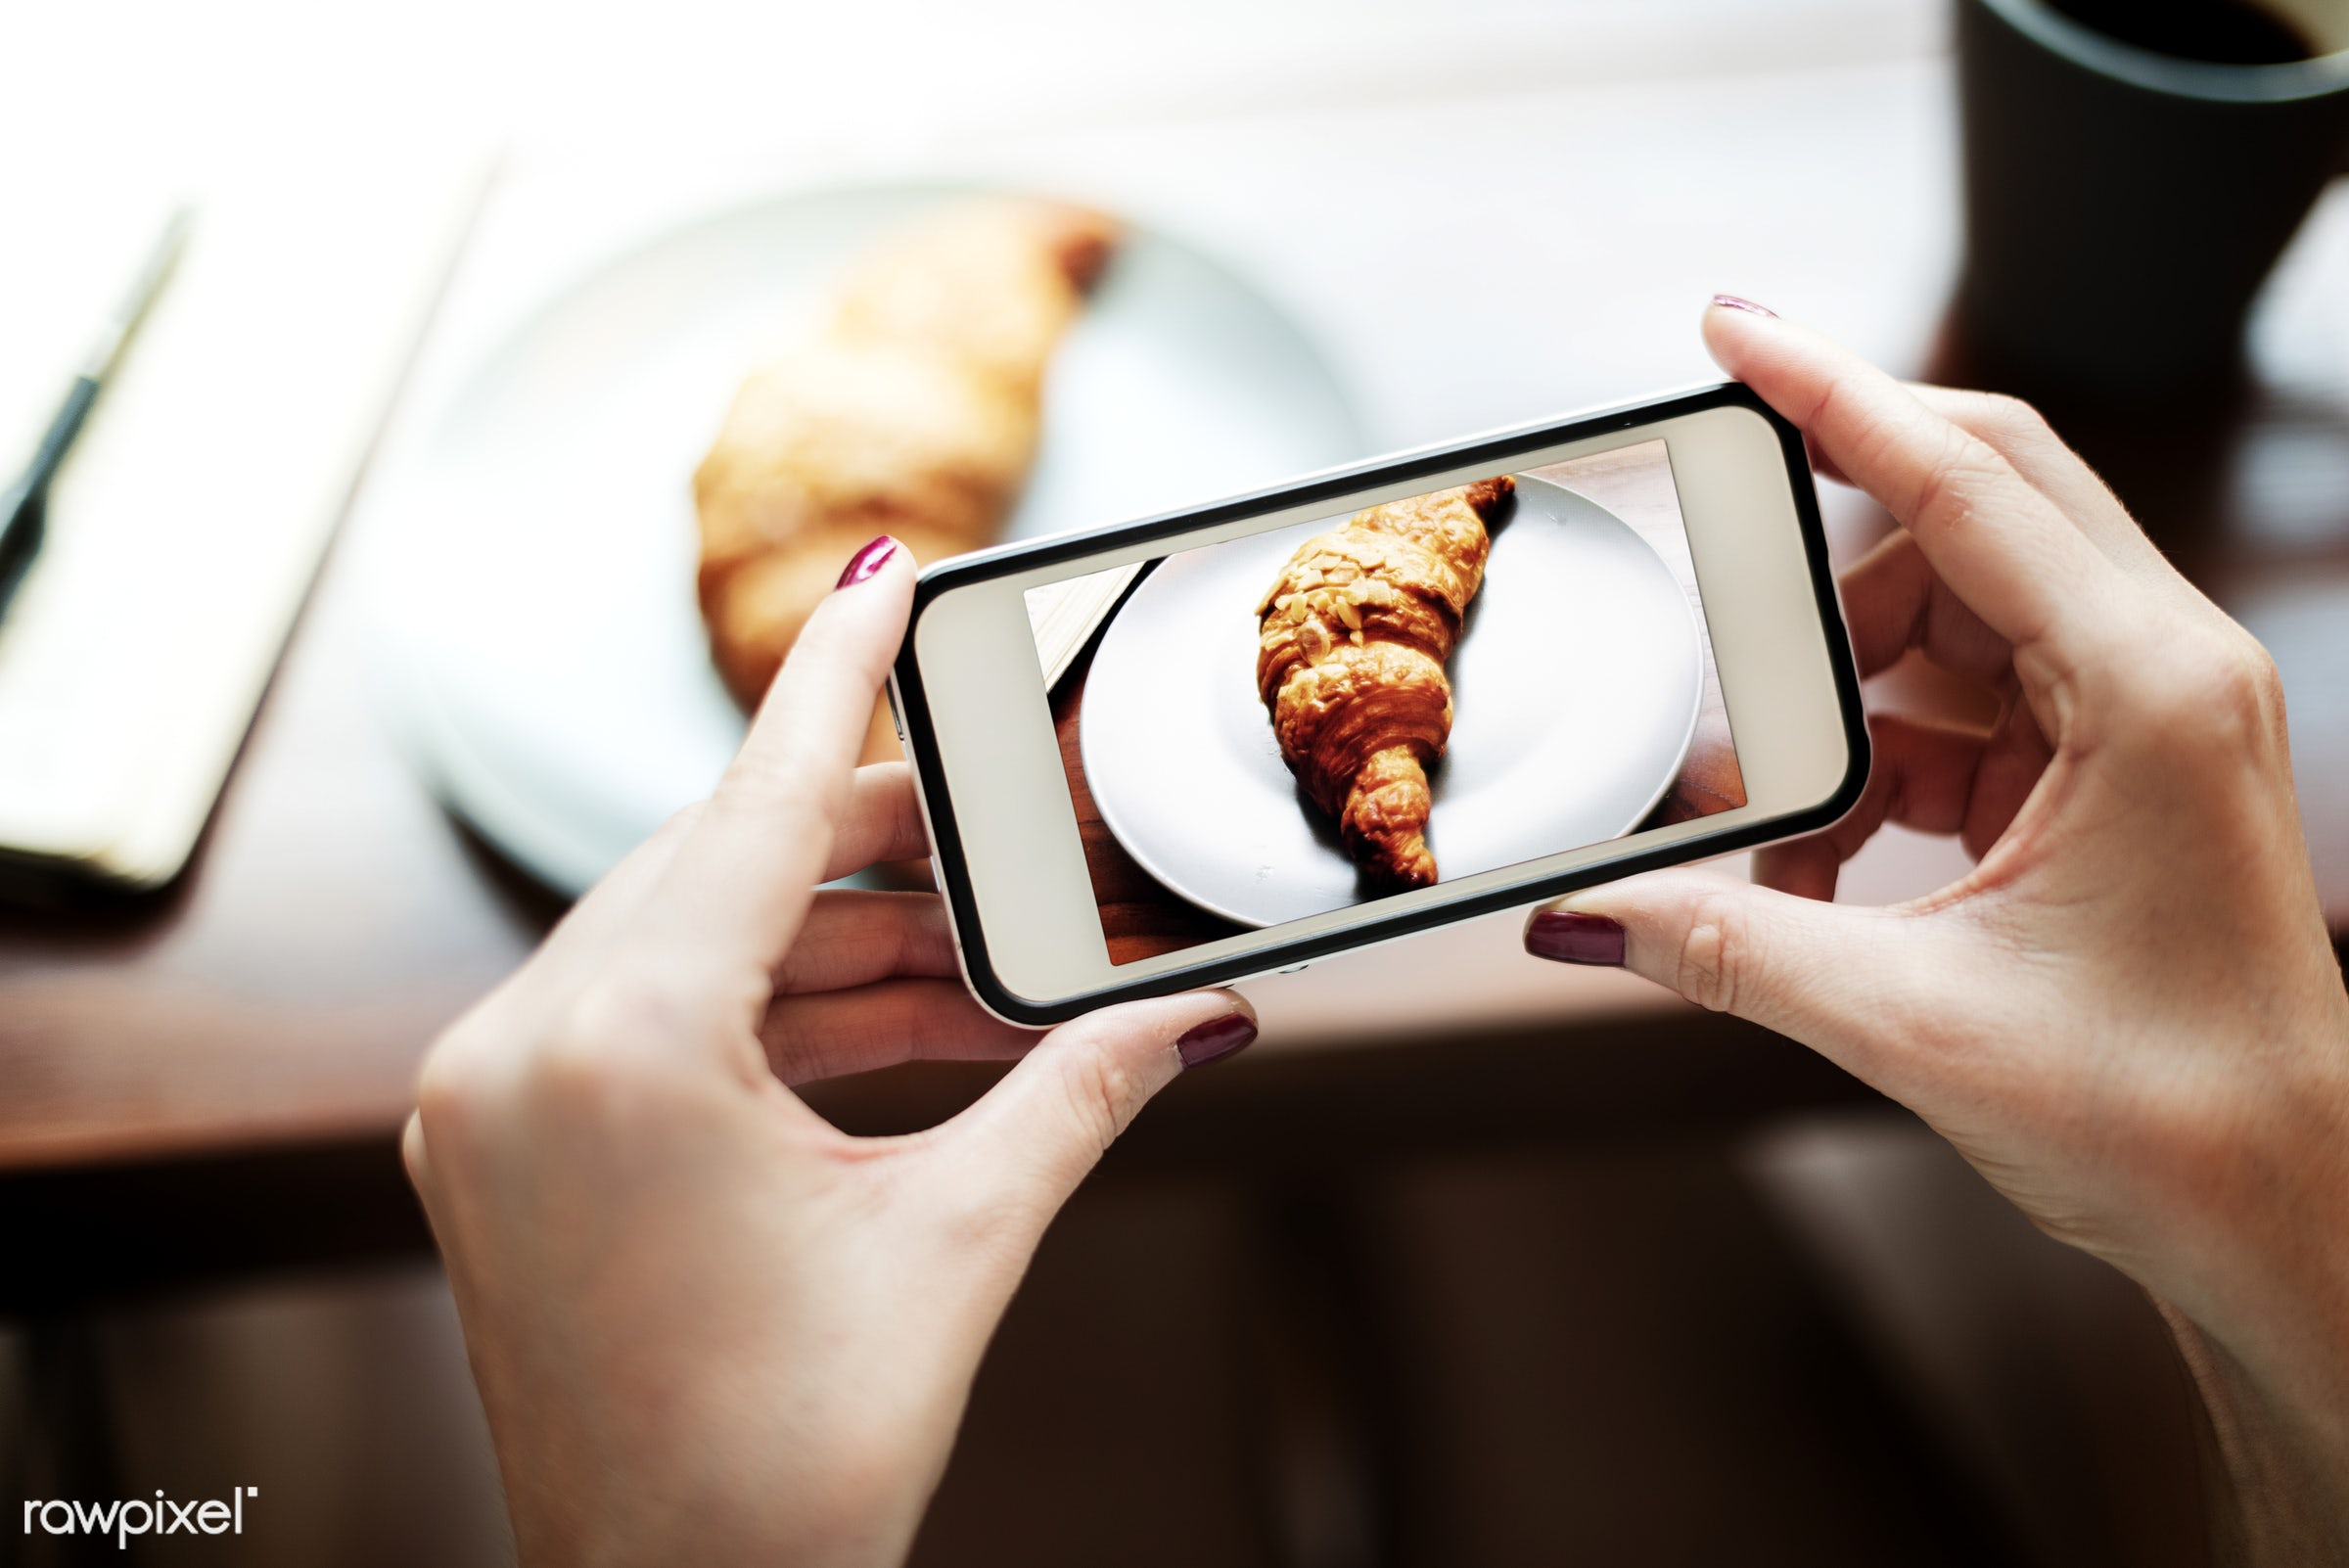 snap, shot, photography, hands, capture, mobile phone, showing, baking, closeup, screen, leisure, photo, taking, croissant,...